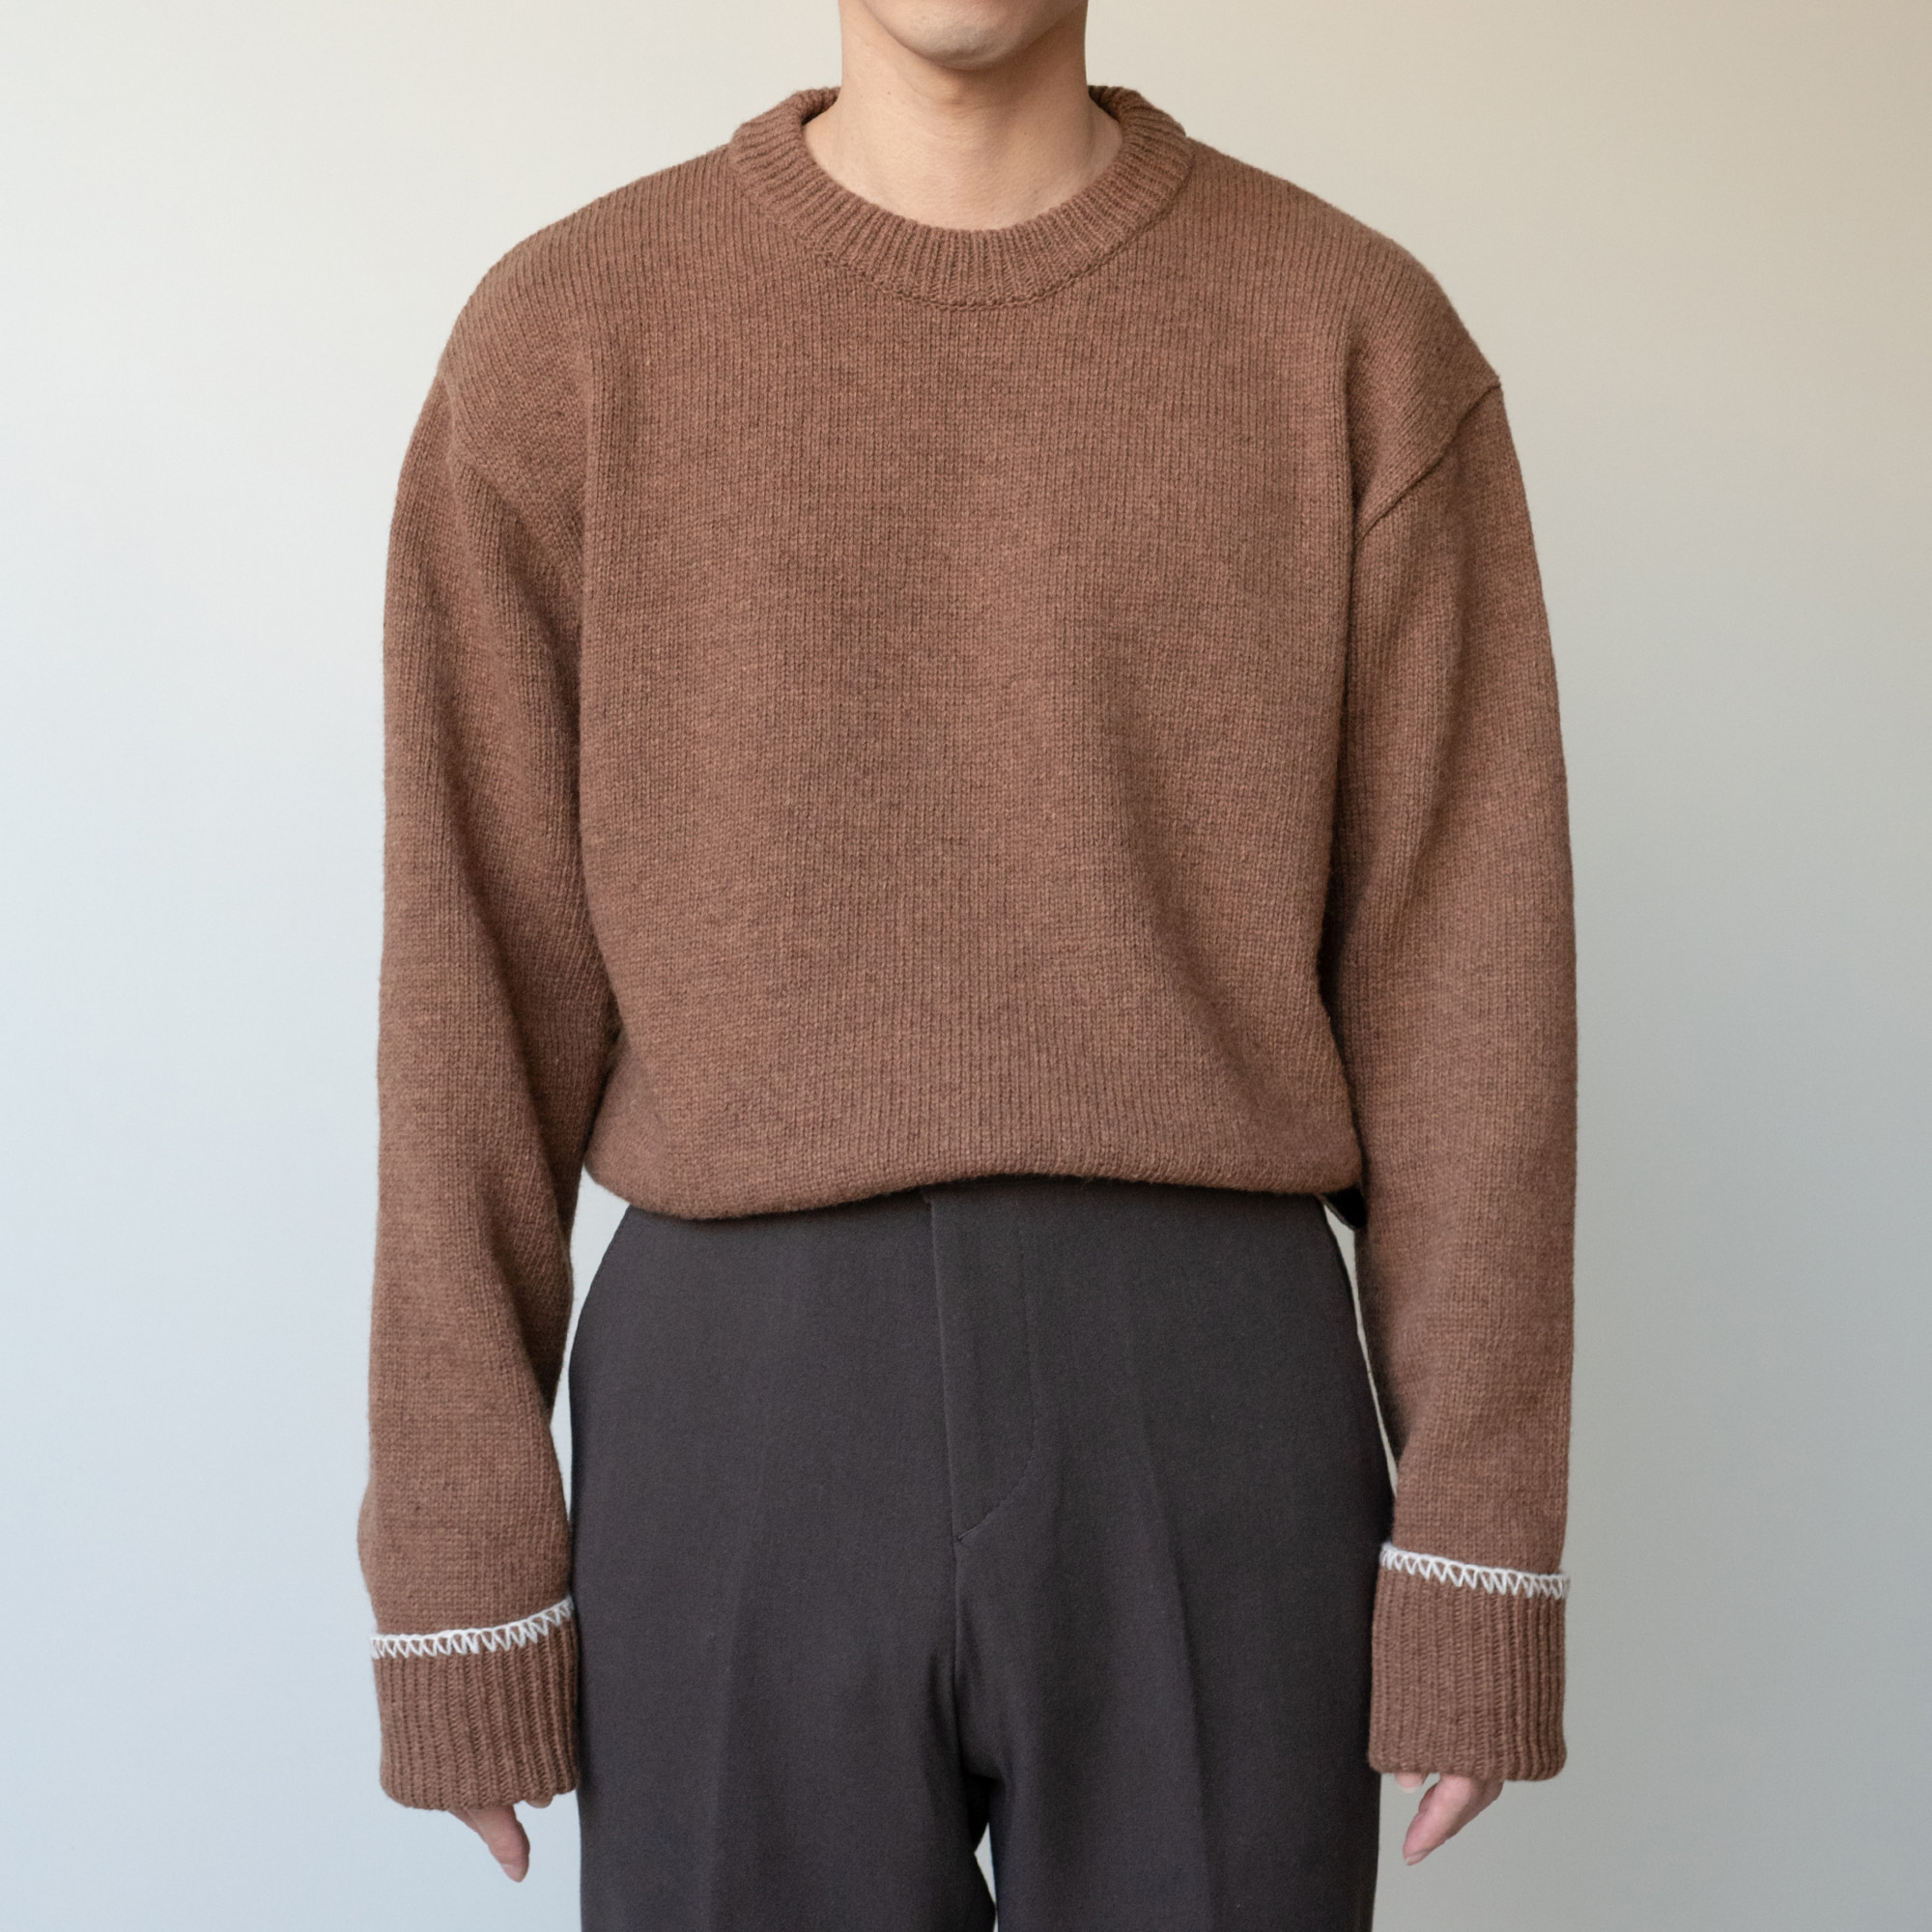 Hoem Stitch Knit (4color)